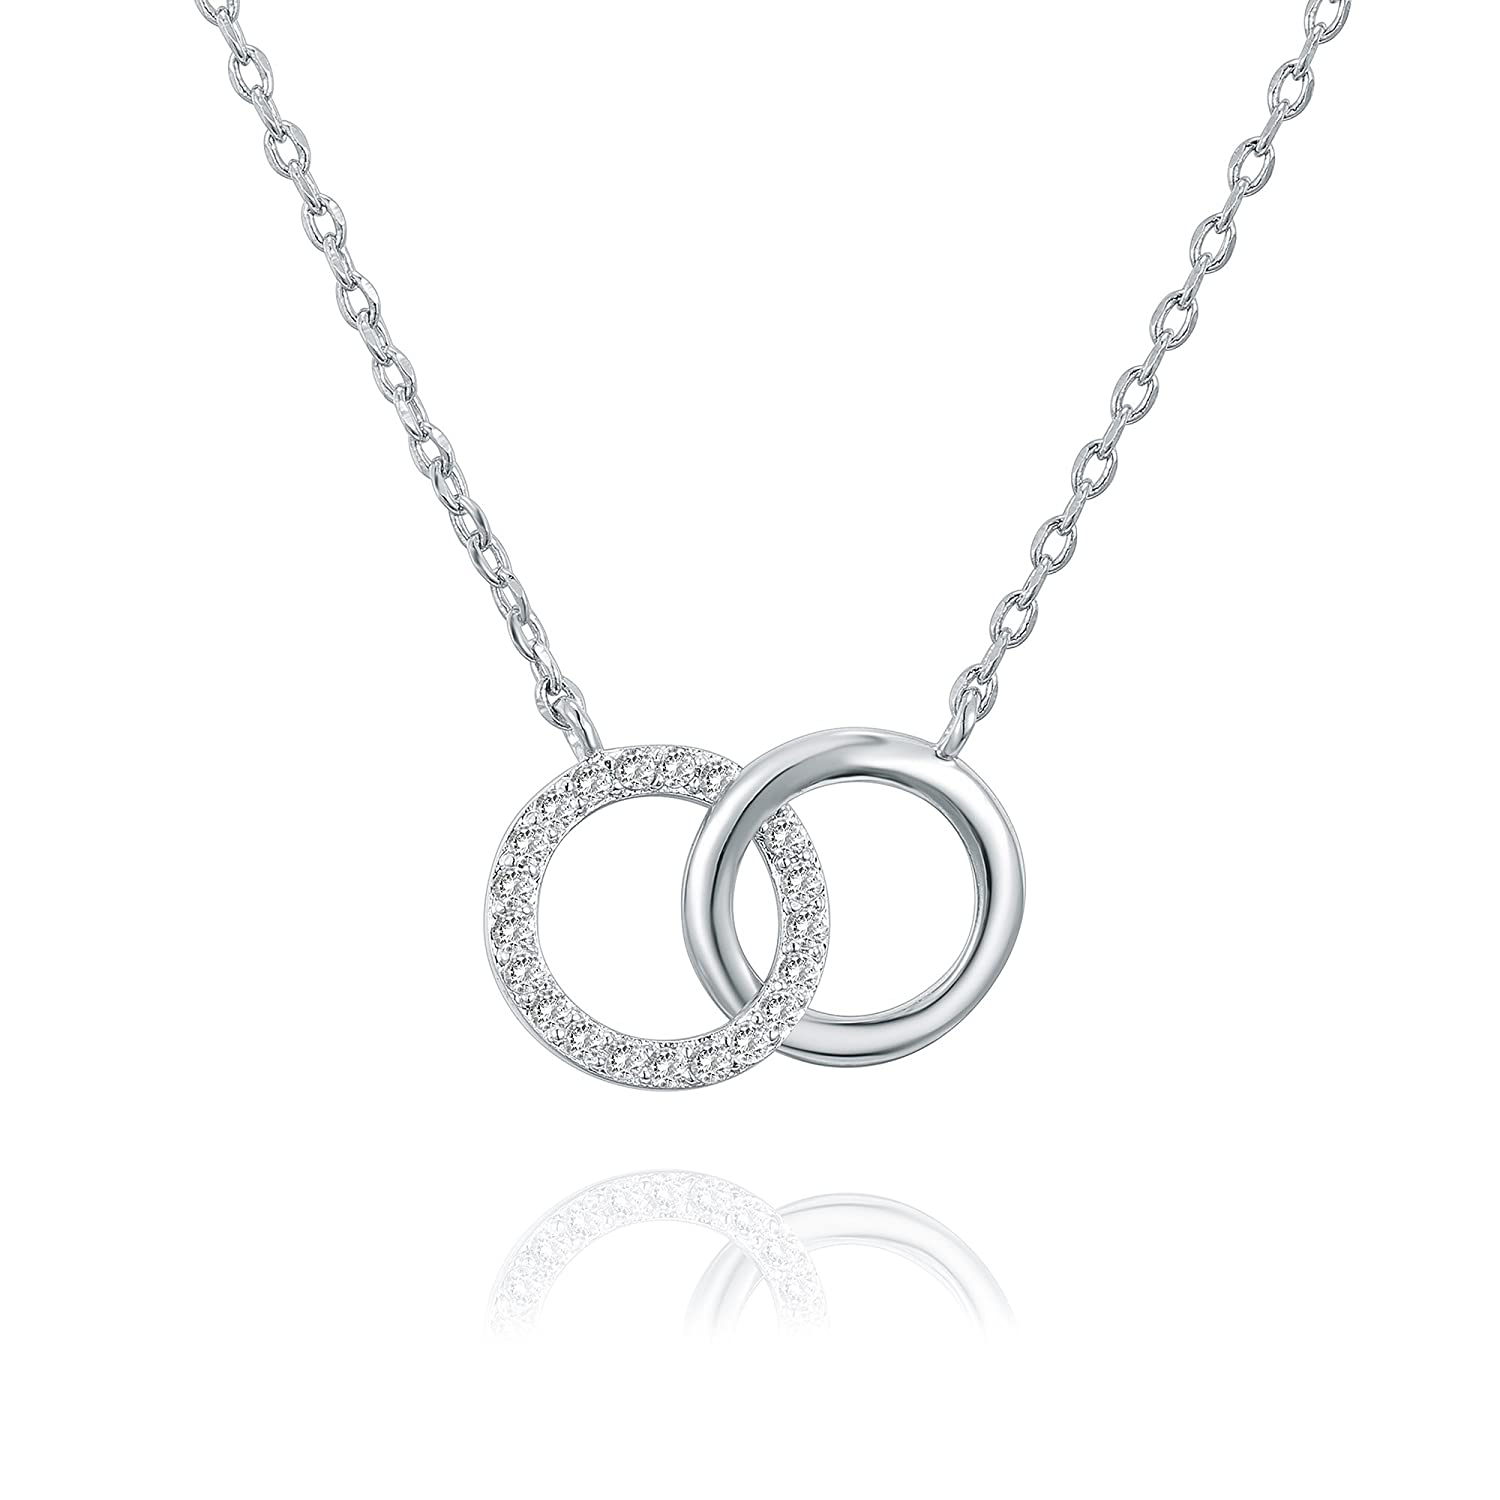 aa80ae8b94 14K Gold Plated Mother Daughter Necklace Two Interlocking Circles Infinity  Necklace - 18